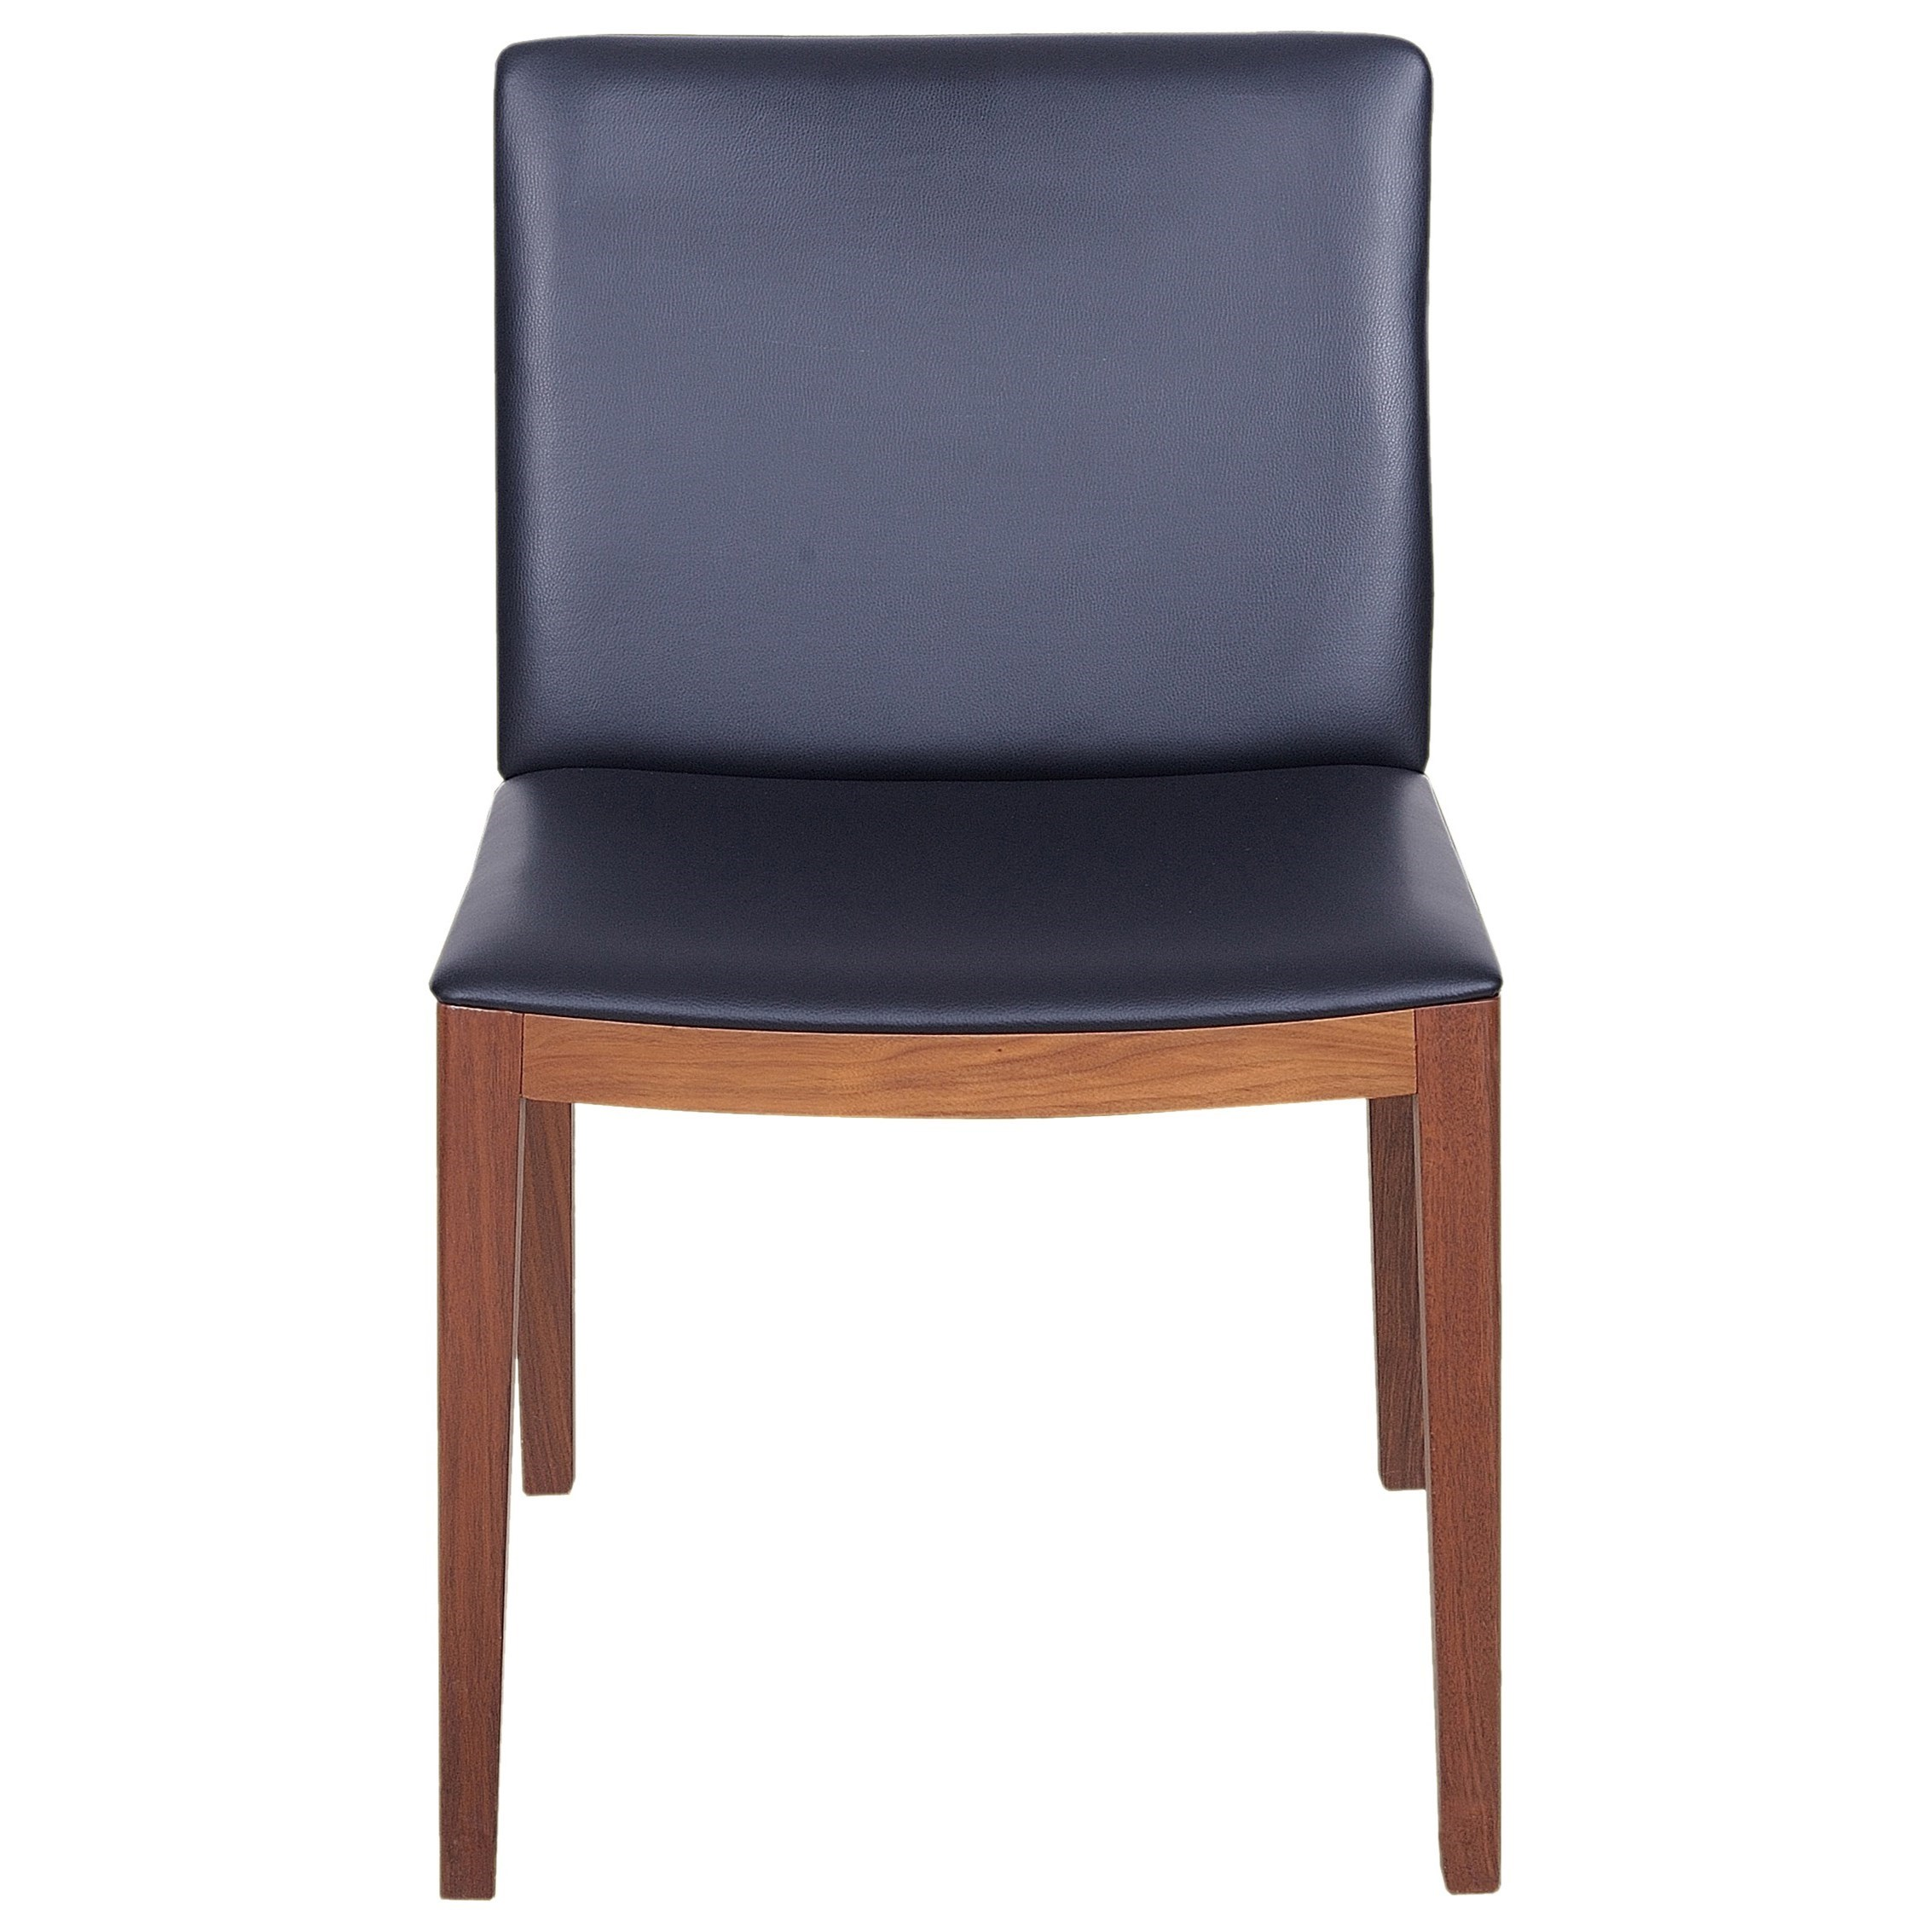 moe's home collection dining chairs monico dining chair black  - moe's home collection dining chairs monico dining chair black  itemnumber cb